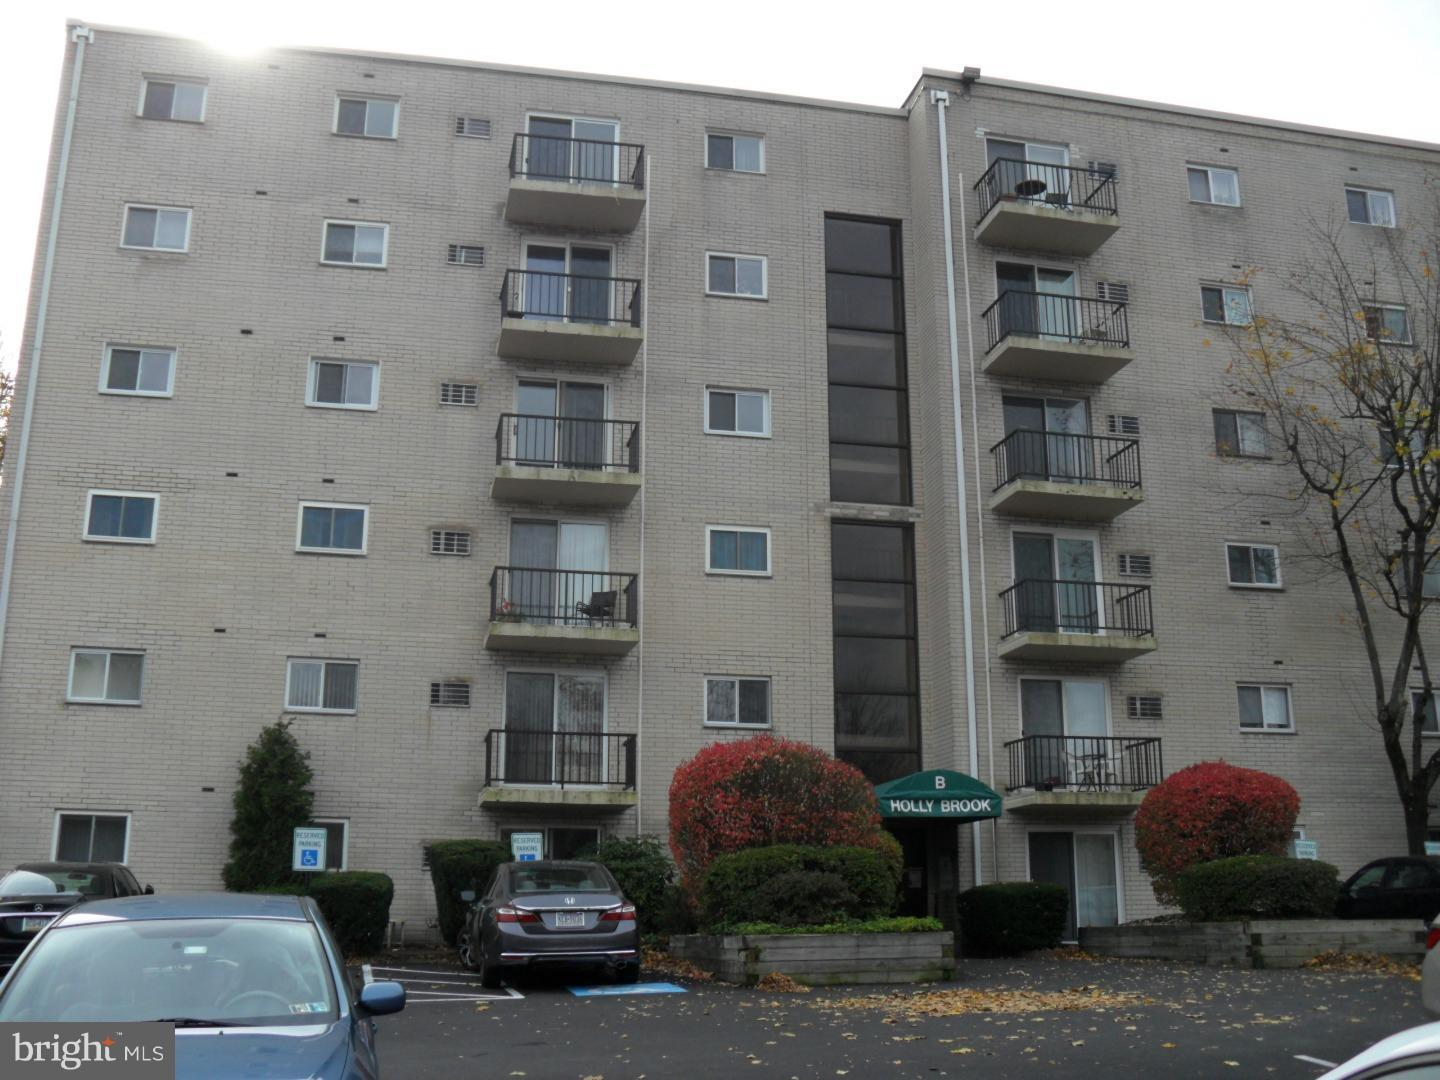 3421 W Chester Pike B 40 Newtown Square Pa 2 Bed 2